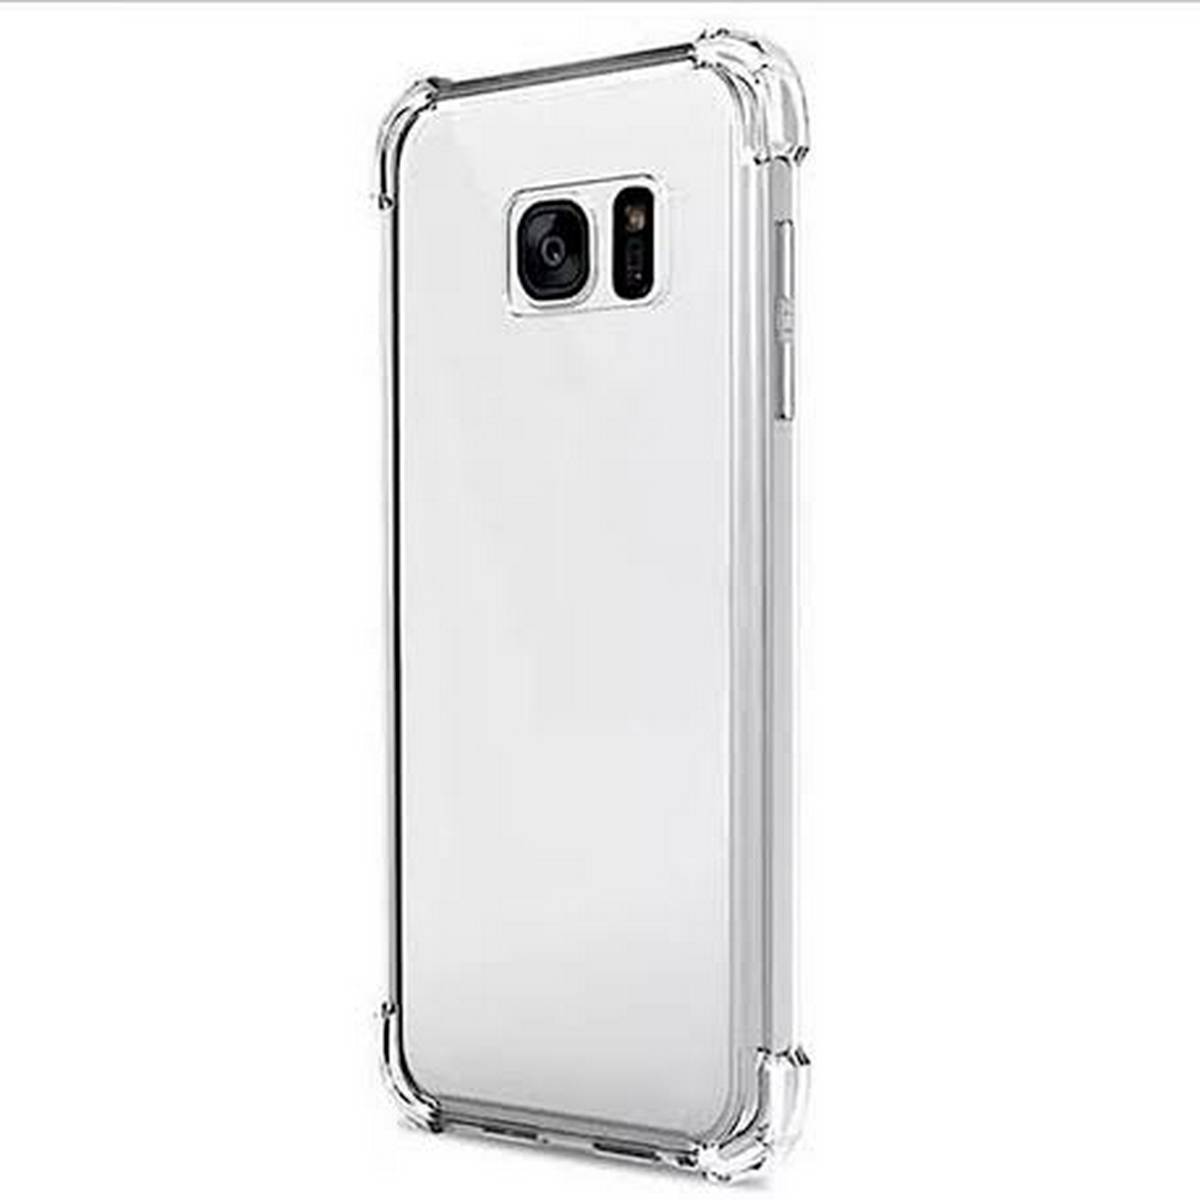 SAMSUNG NOTE 5 Soft Shock Proof Jelly Back Cover - Transparent